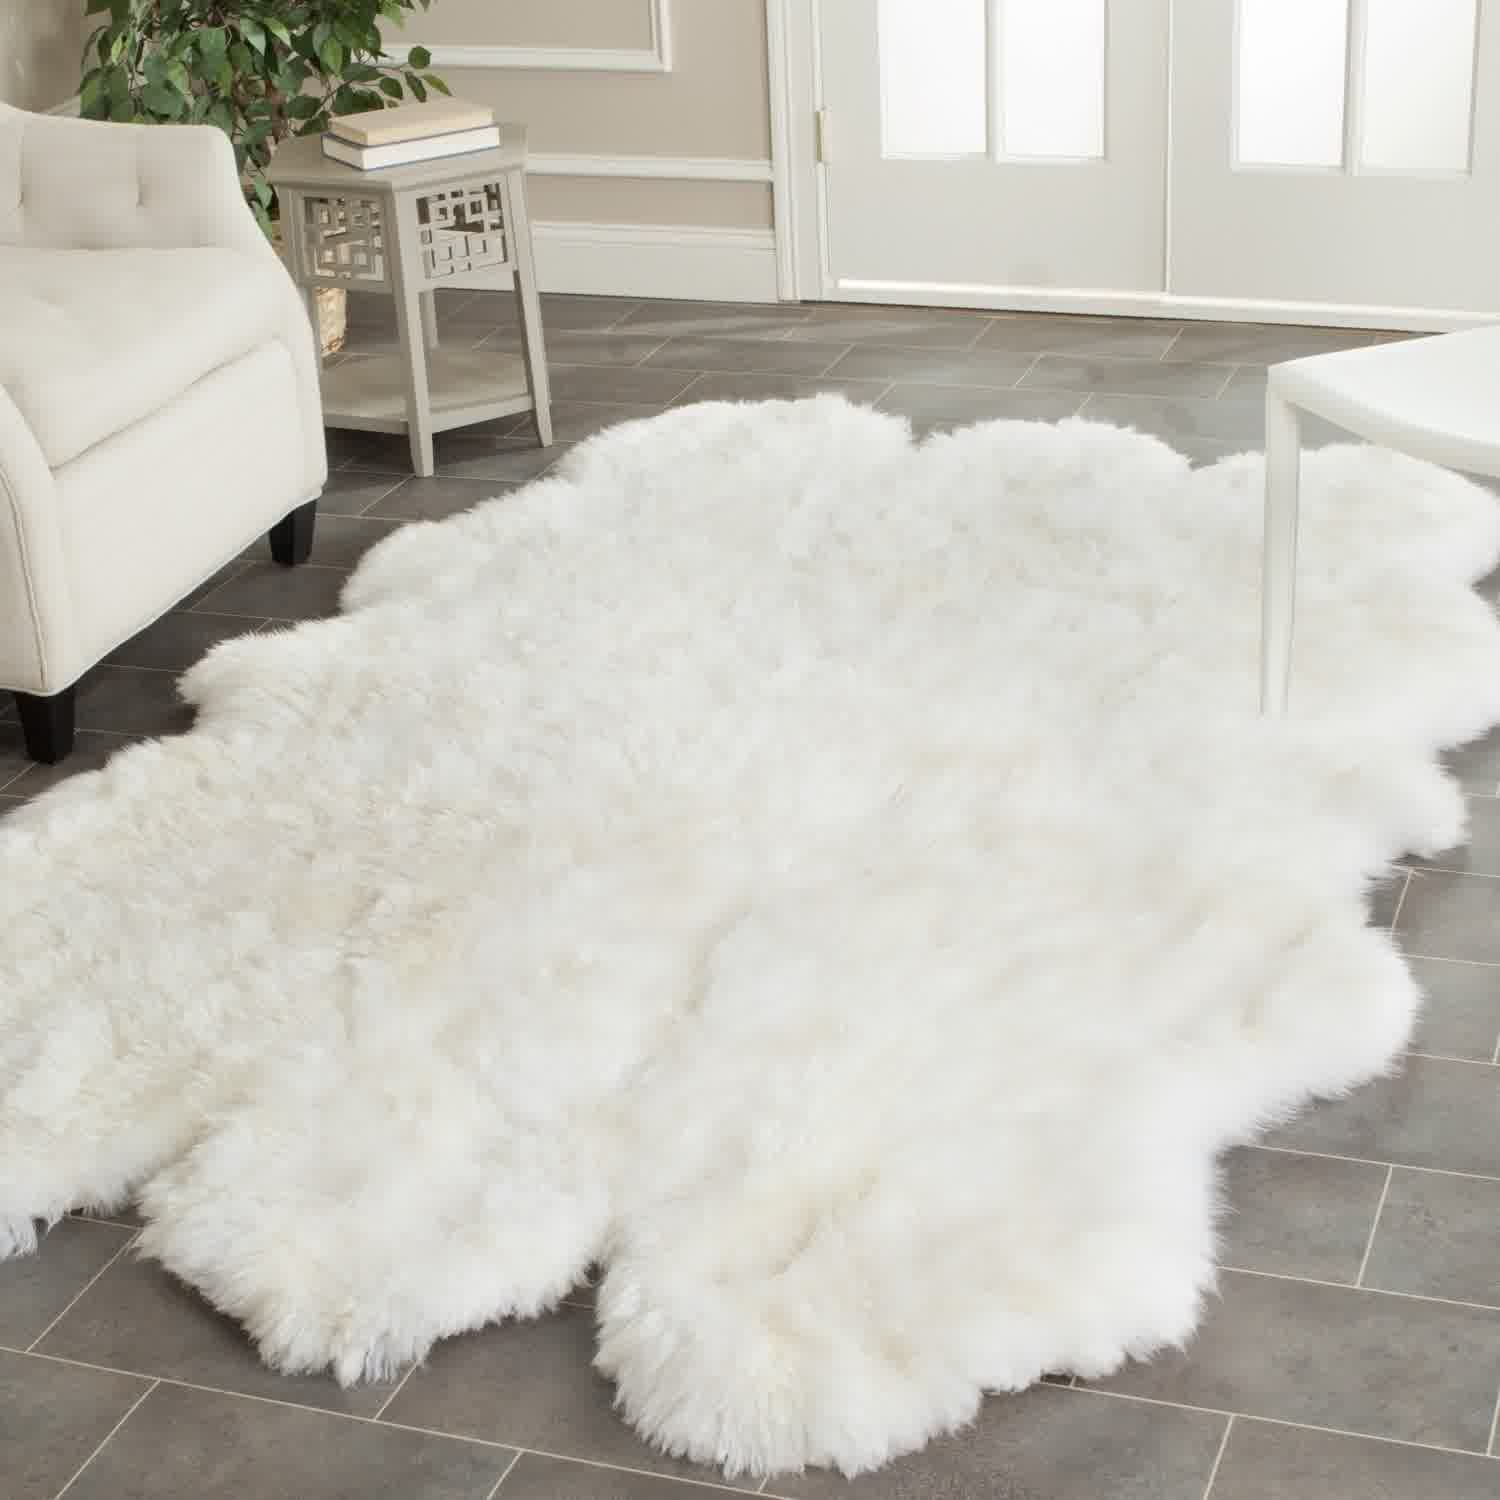 Fluffy White Rug A Small Floor Feature For Ultimate Beauty And Comfort Design Dywan Sypialnie